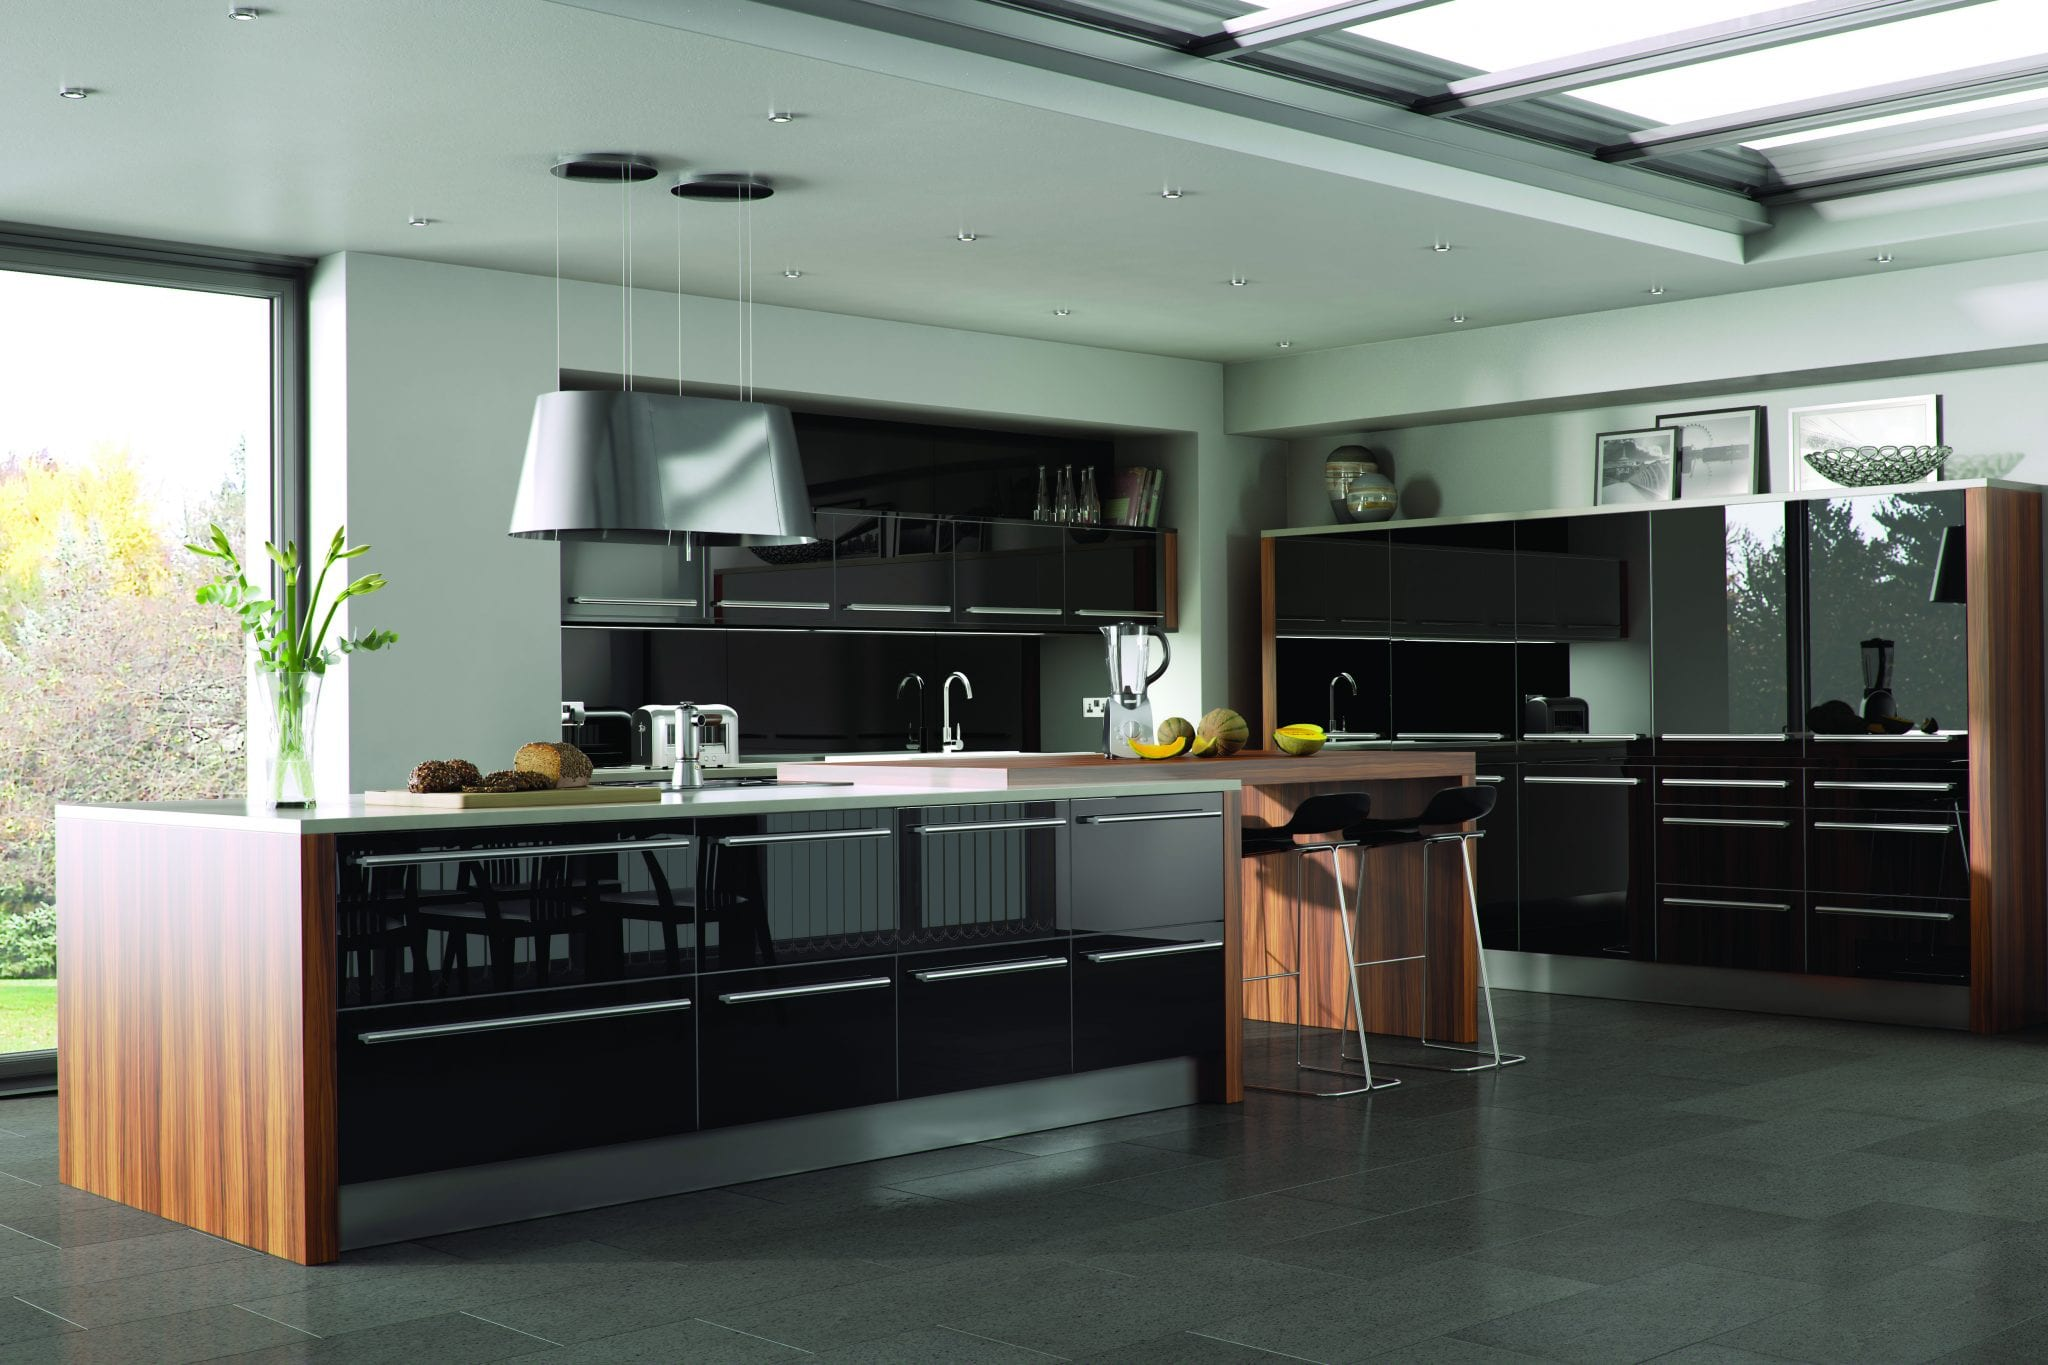 Genoa kitchen in black gloss